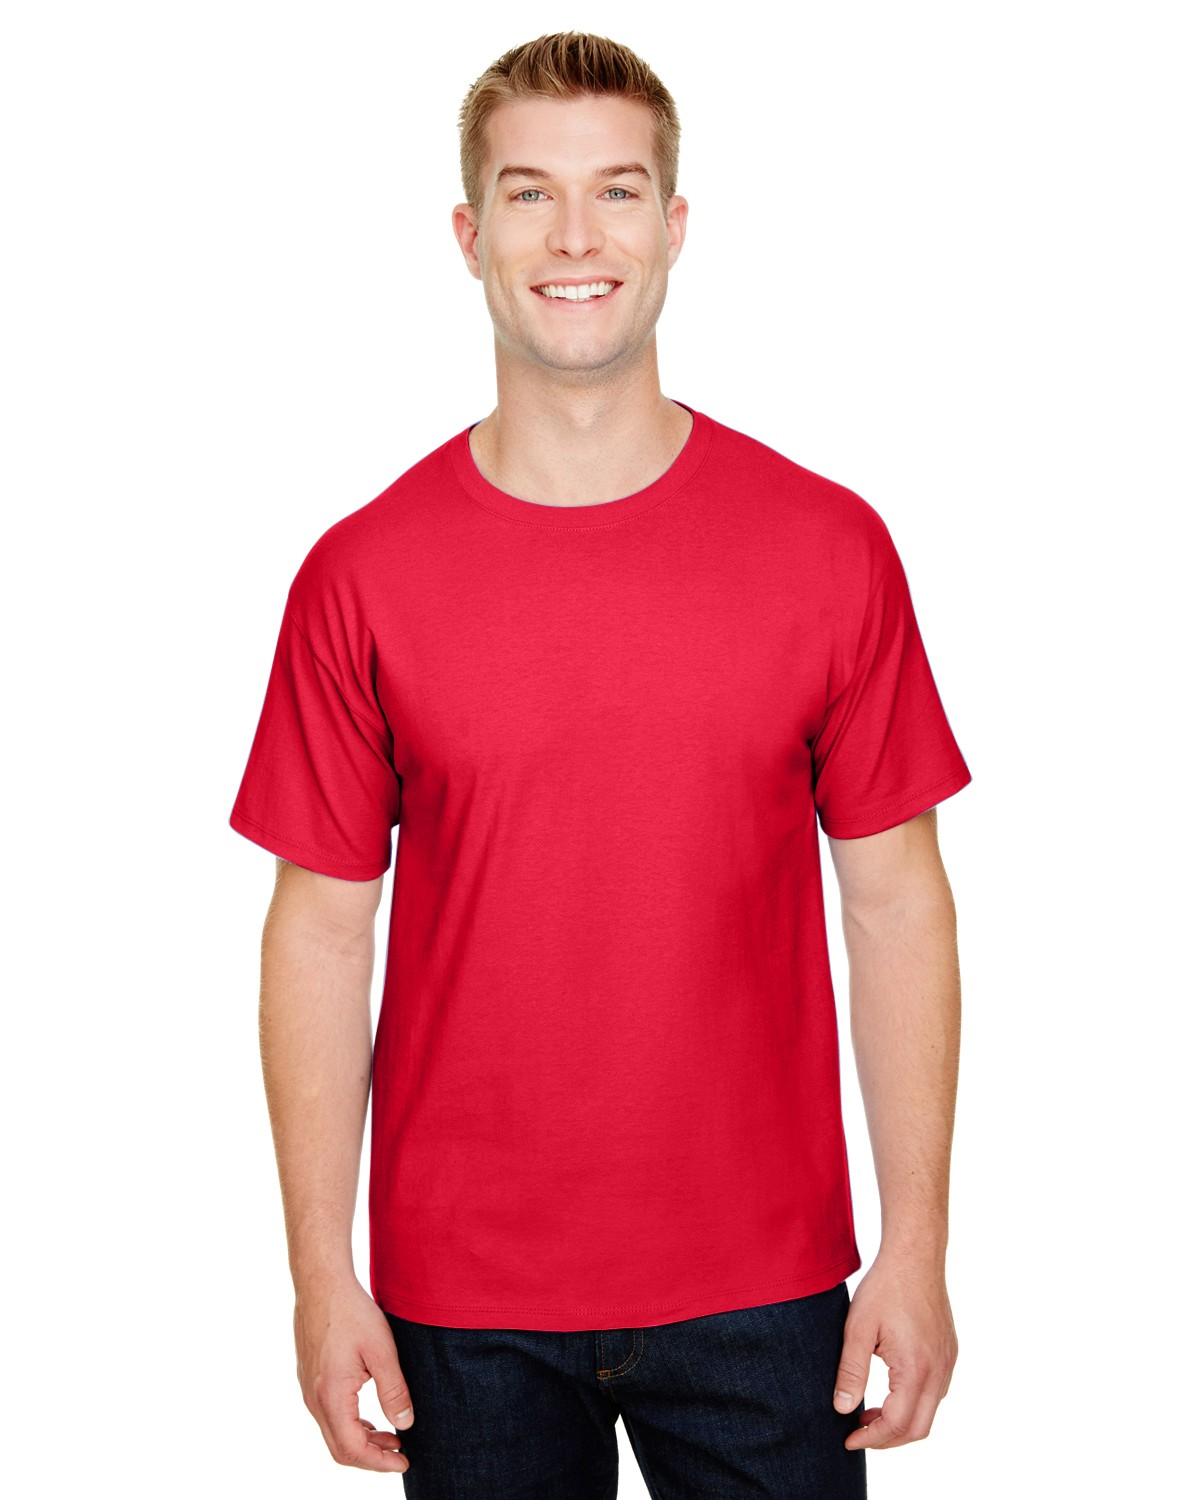 CP10 Champion Athletic Red